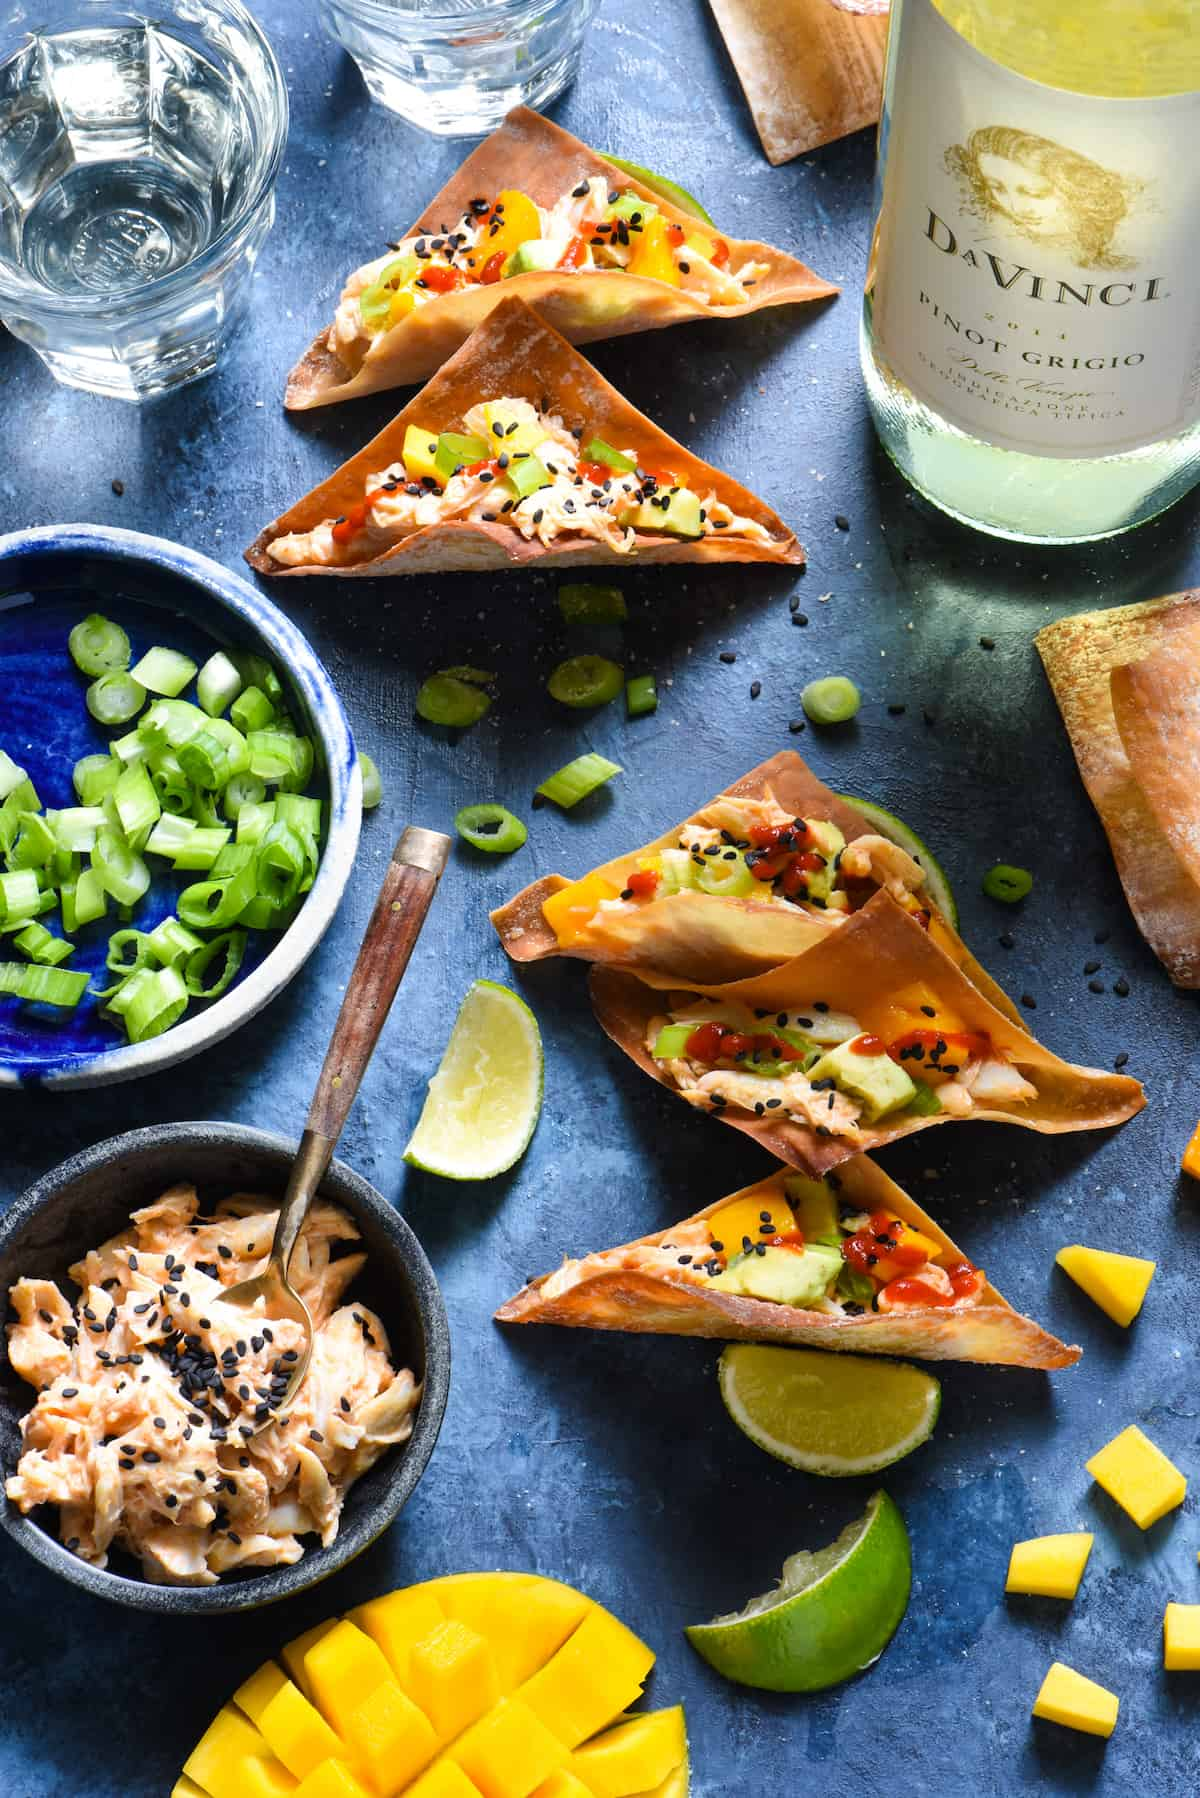 Spicy Crab Wonton Tacos - The flavors of a California sushi roll, in a crunchy wonton taco. Impress your guests with these easy entertaining recipe. | foxeslovelemons.com